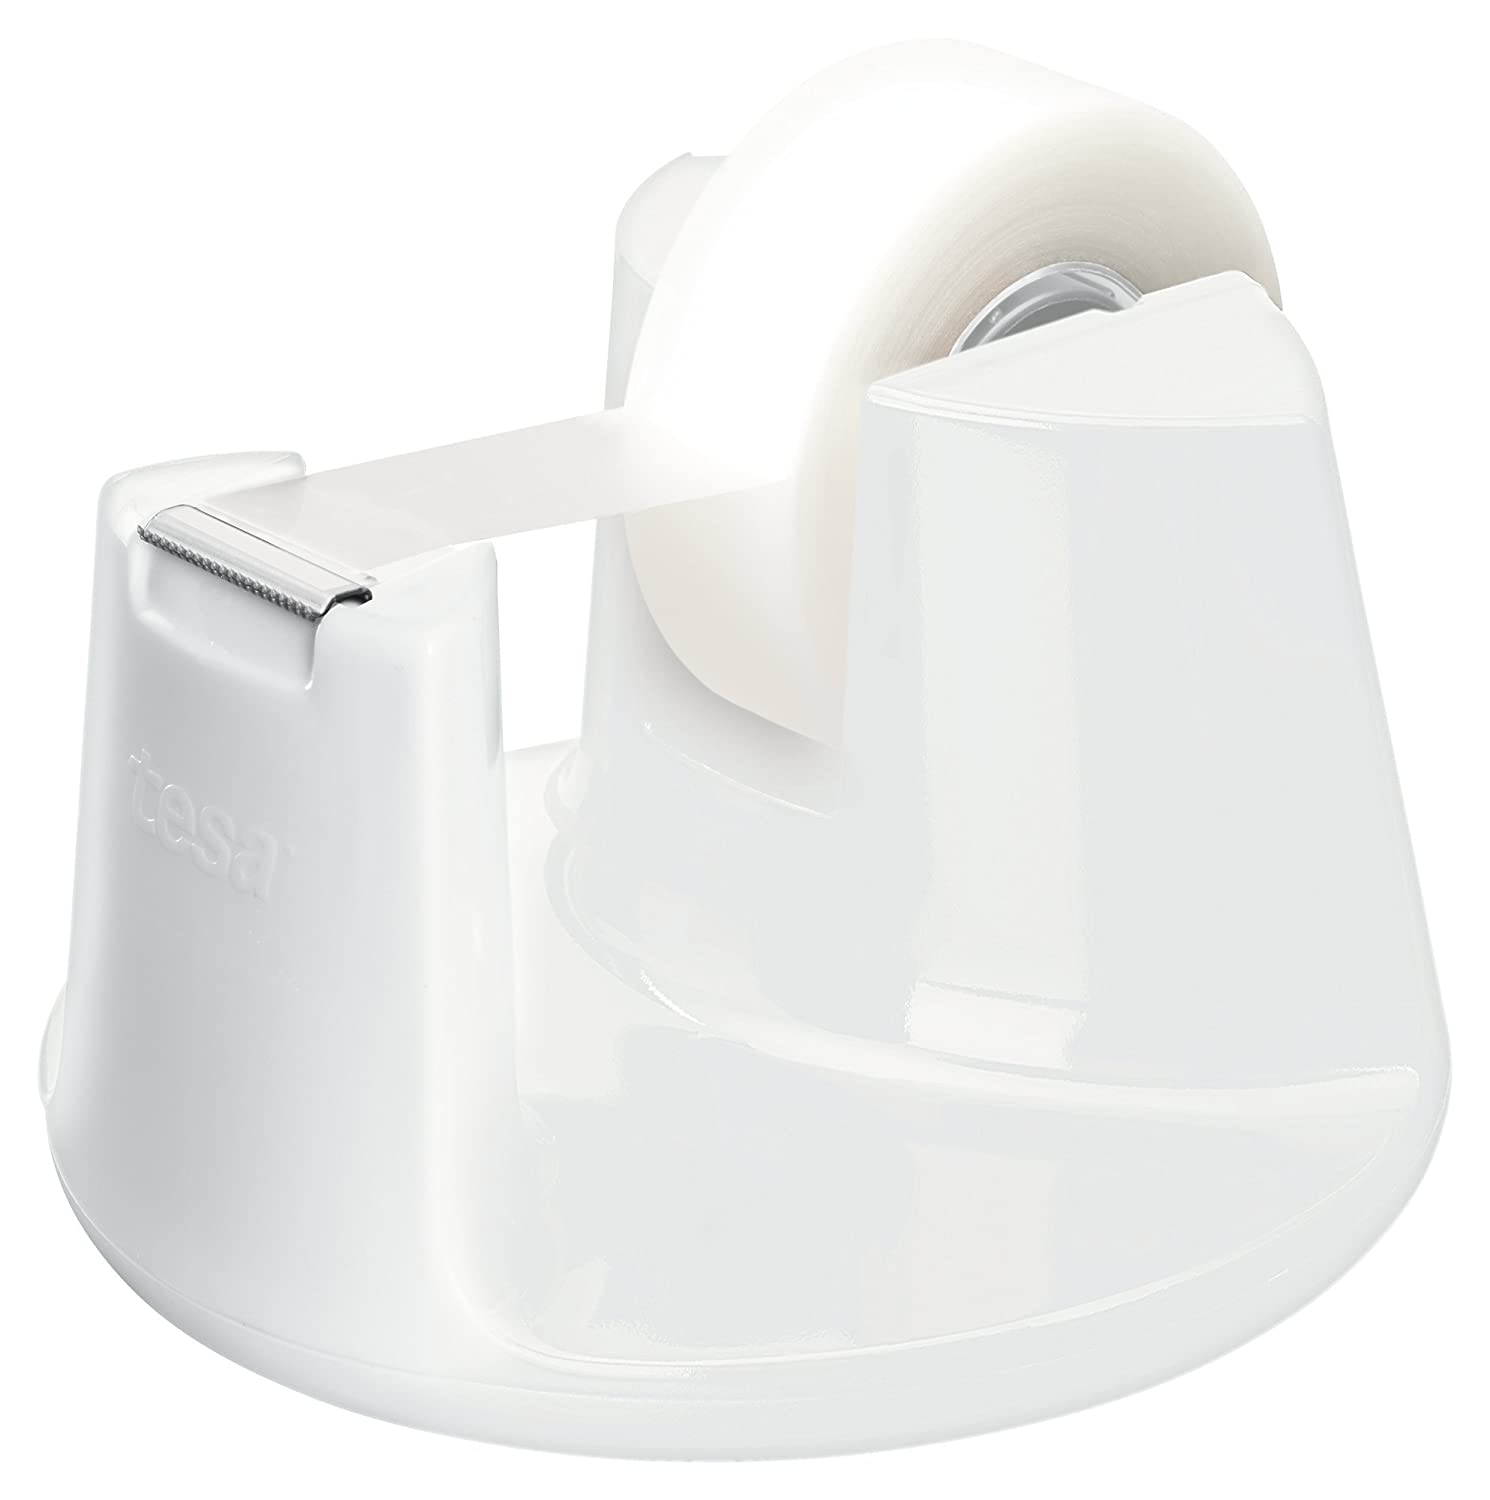 Amazon.com : Tesa Easy Cut Compact 53838-00000-00 Tape Dispenser 1 Matt Opaque 33 m x 19 mm White : Office Products